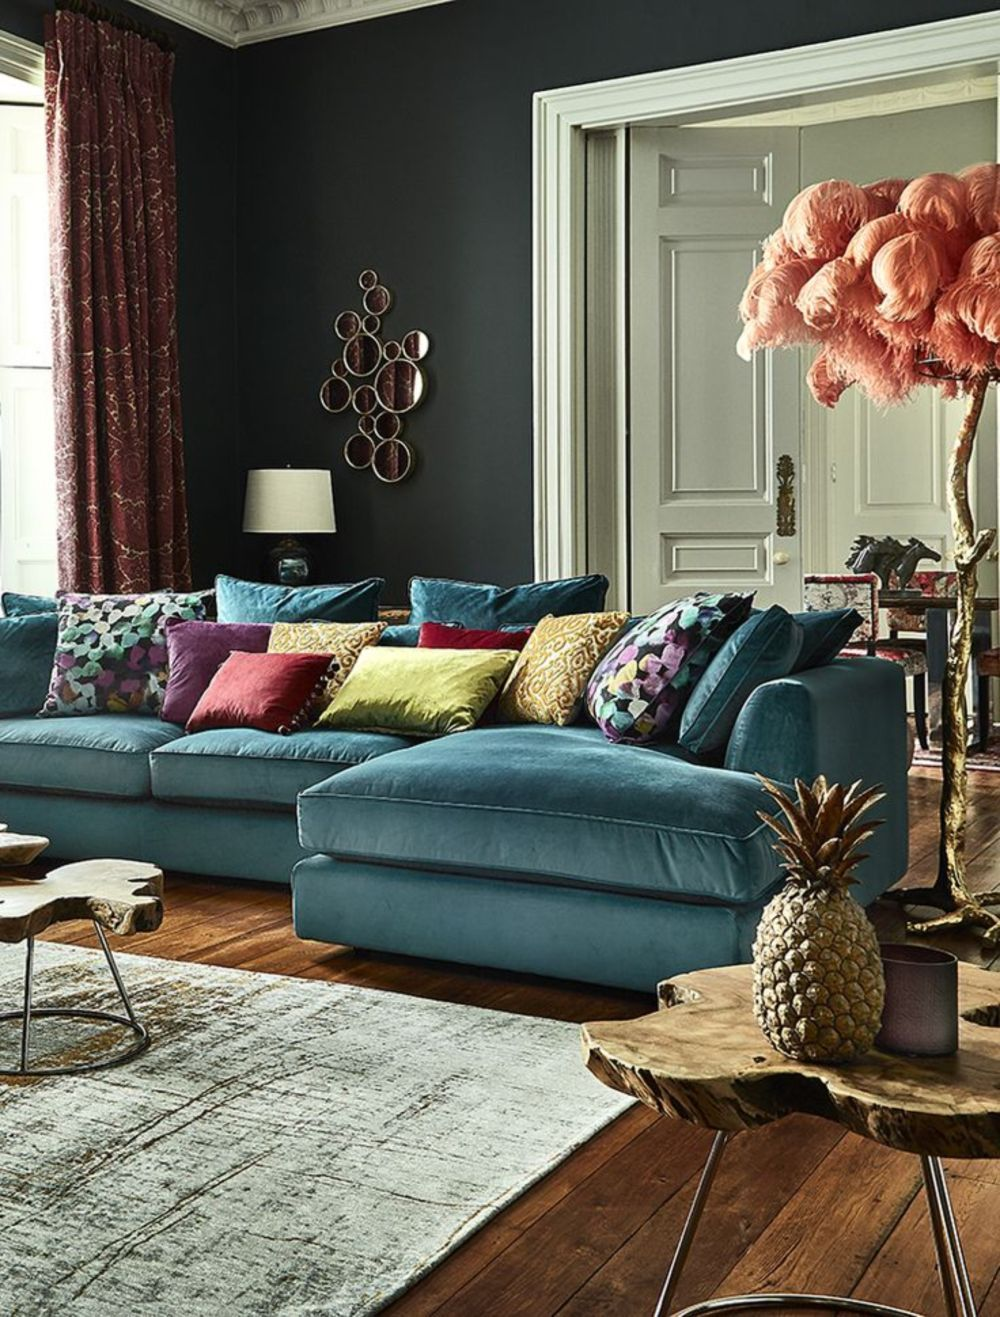 Stunning perfect sofa choice for your living room decoration